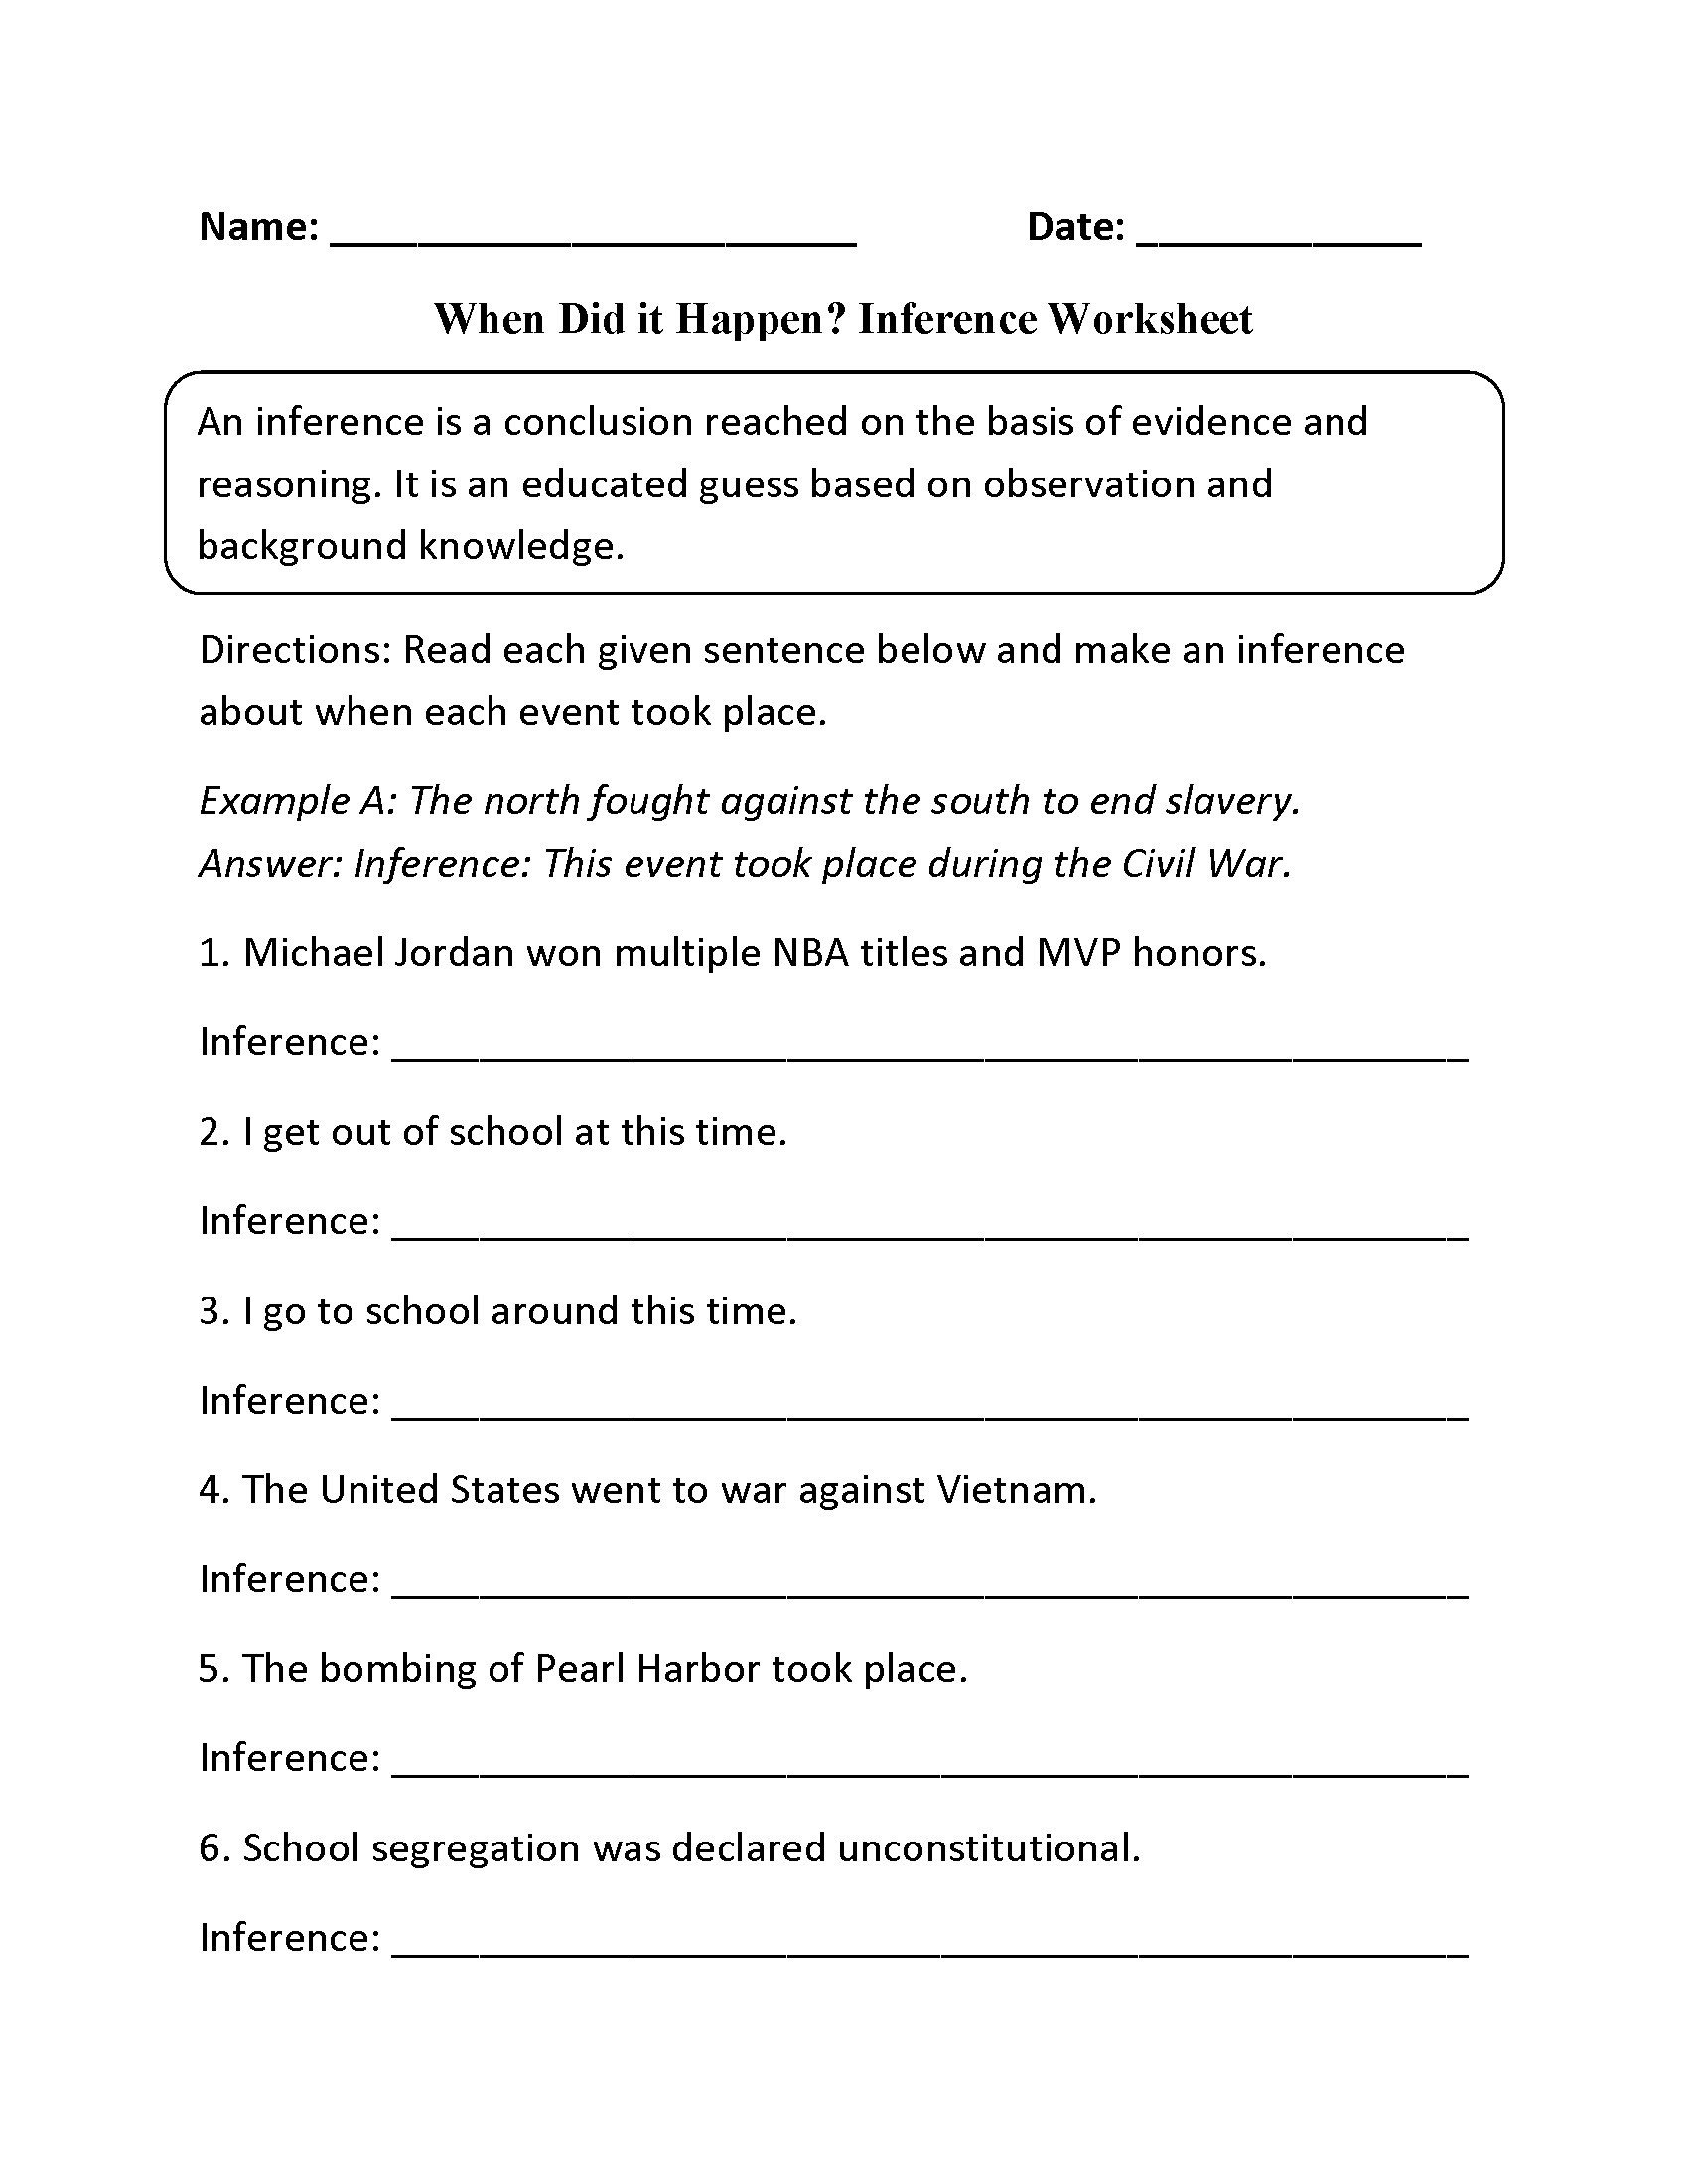 Social Inferences Worksheets Making Inferences Worksheets 5th Grade